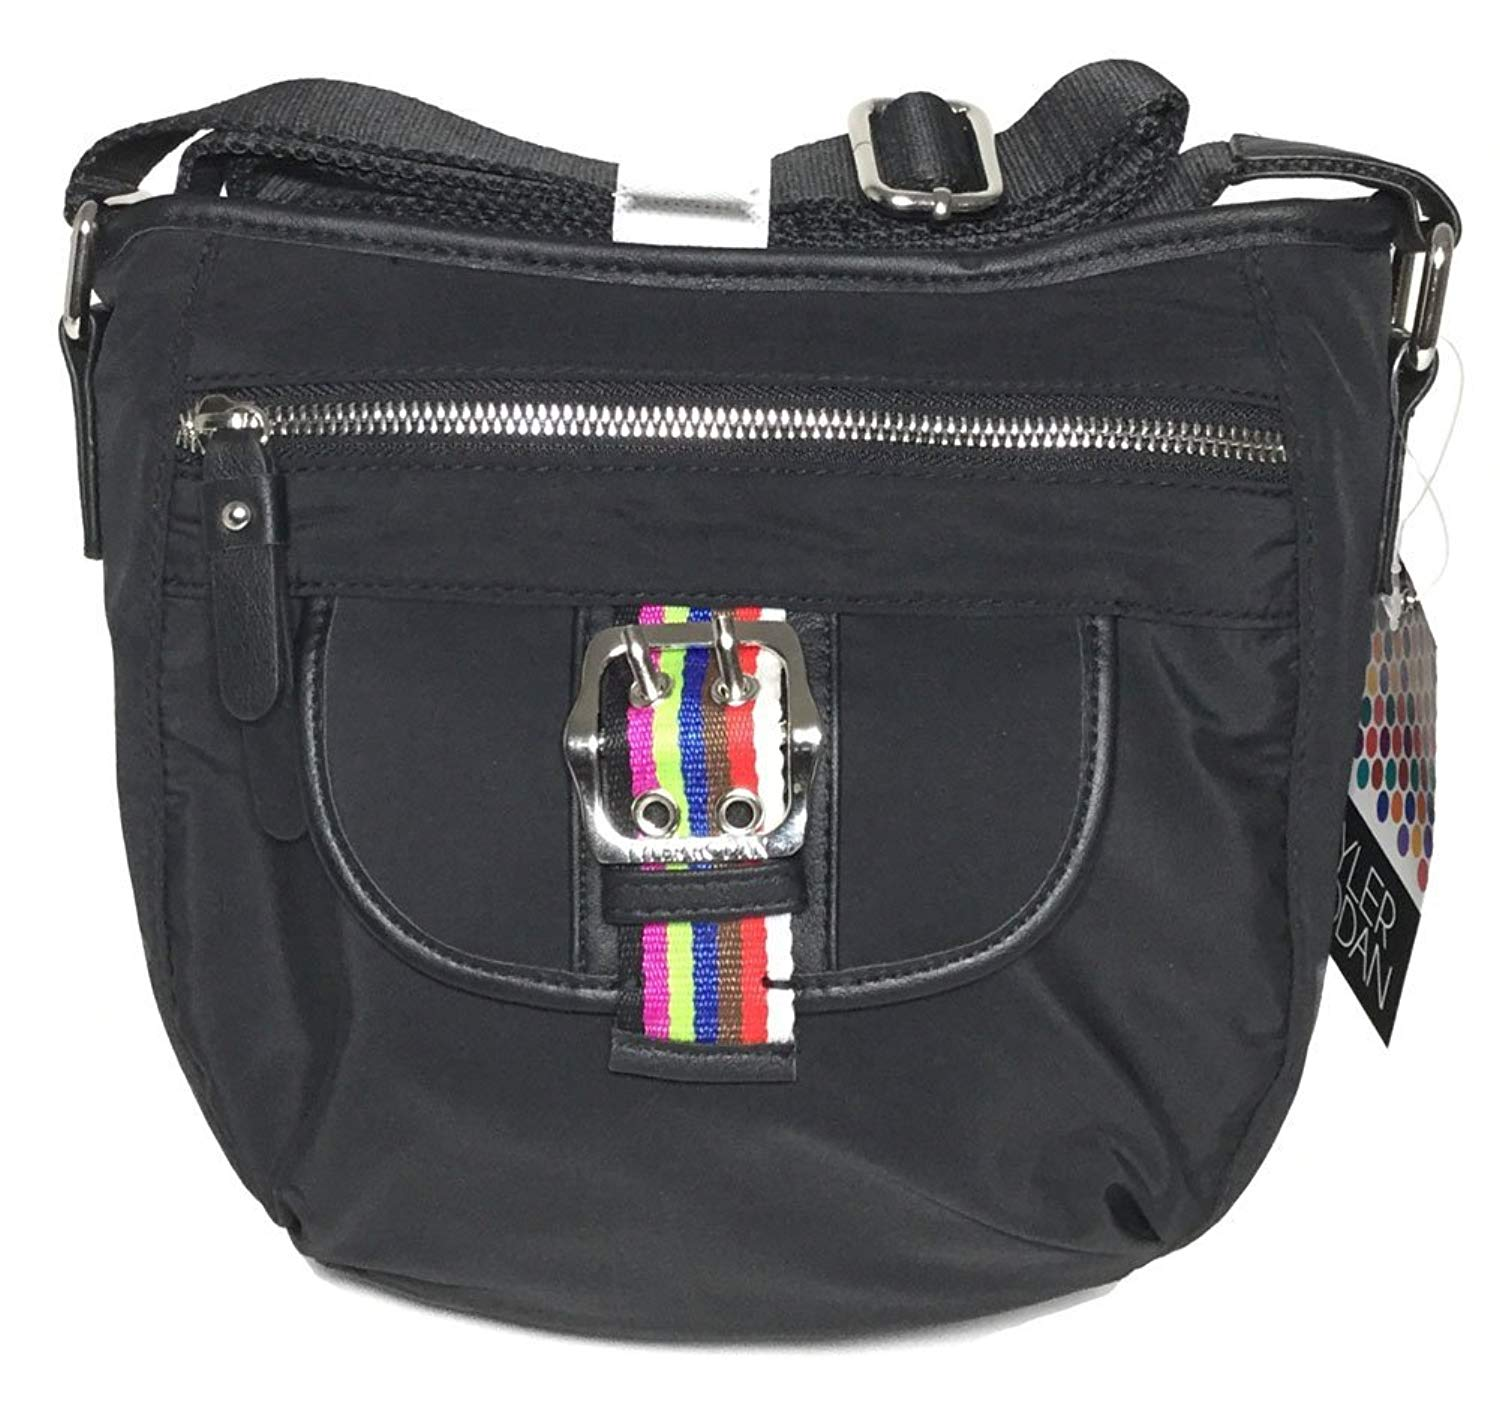 47f4fca60765 Tyler Rodan Black Oxford Mid Cross Body